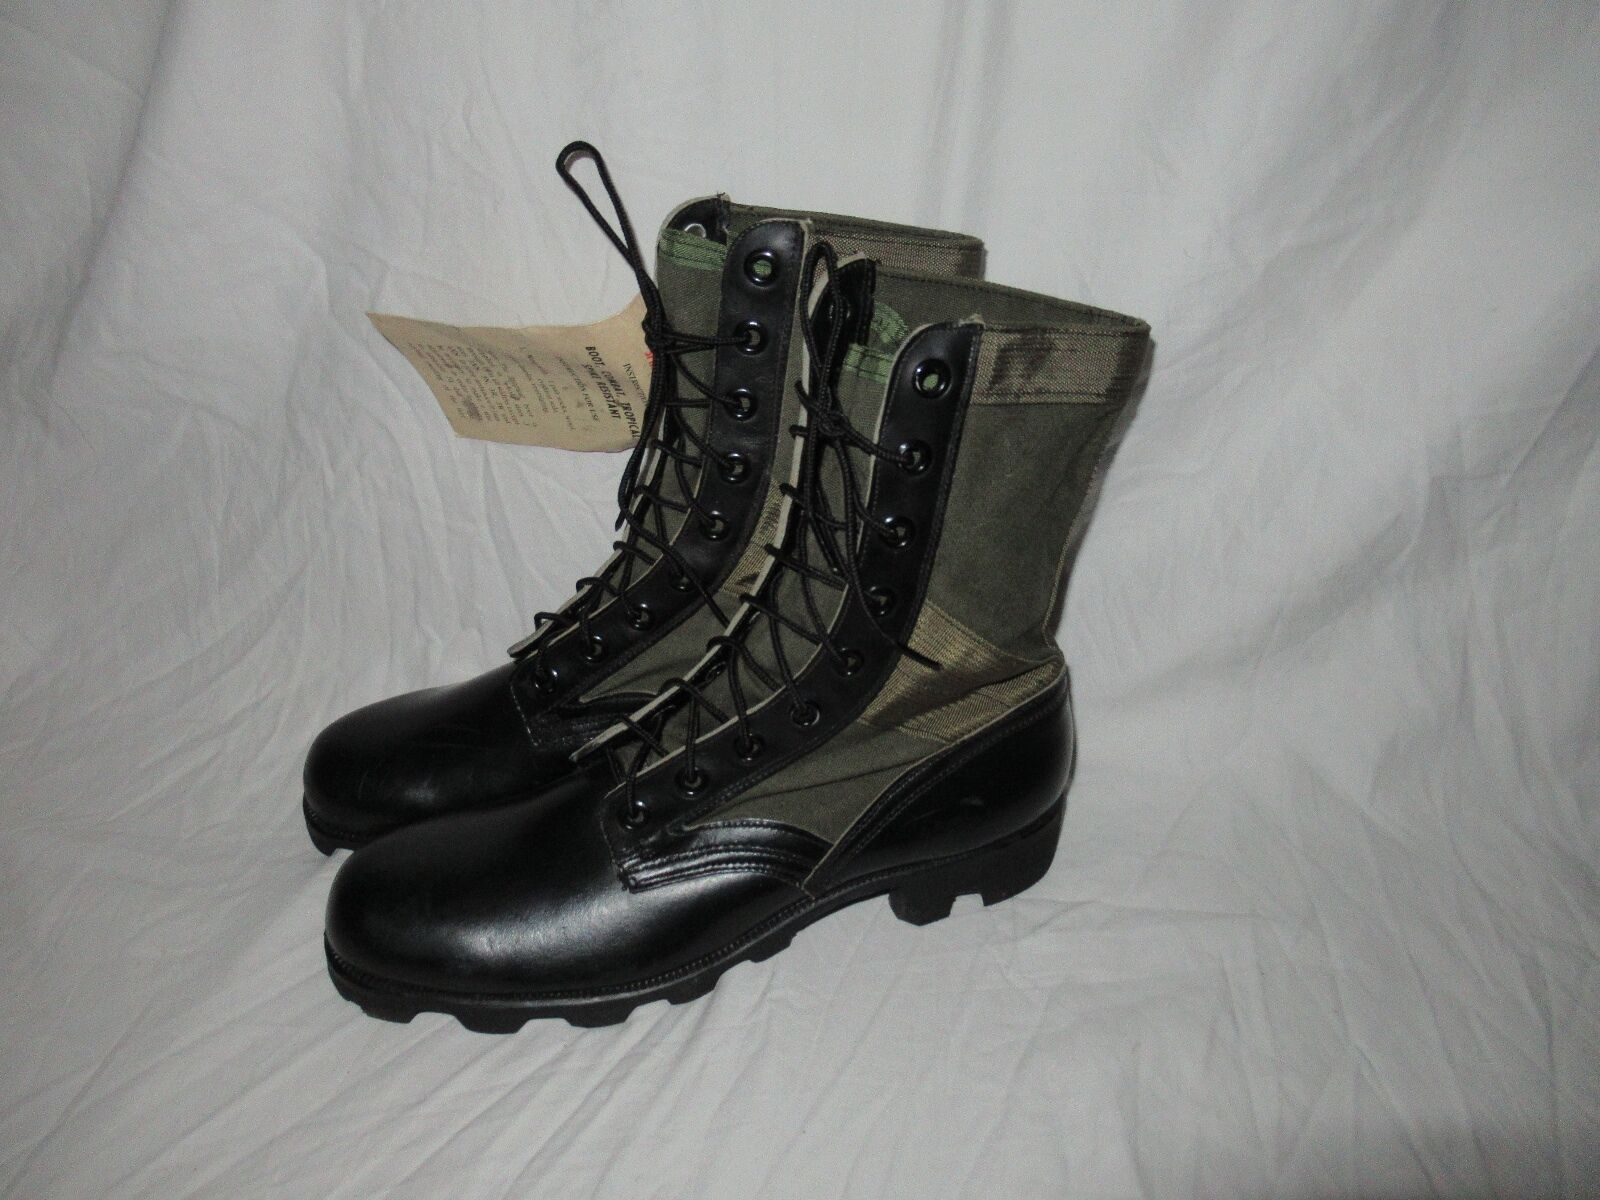 9 X N VIETNAM 69 RO SEARCH CANVAS LEATHER ARMY JUNGLE COMBAT BOOTS MILITARY NOS